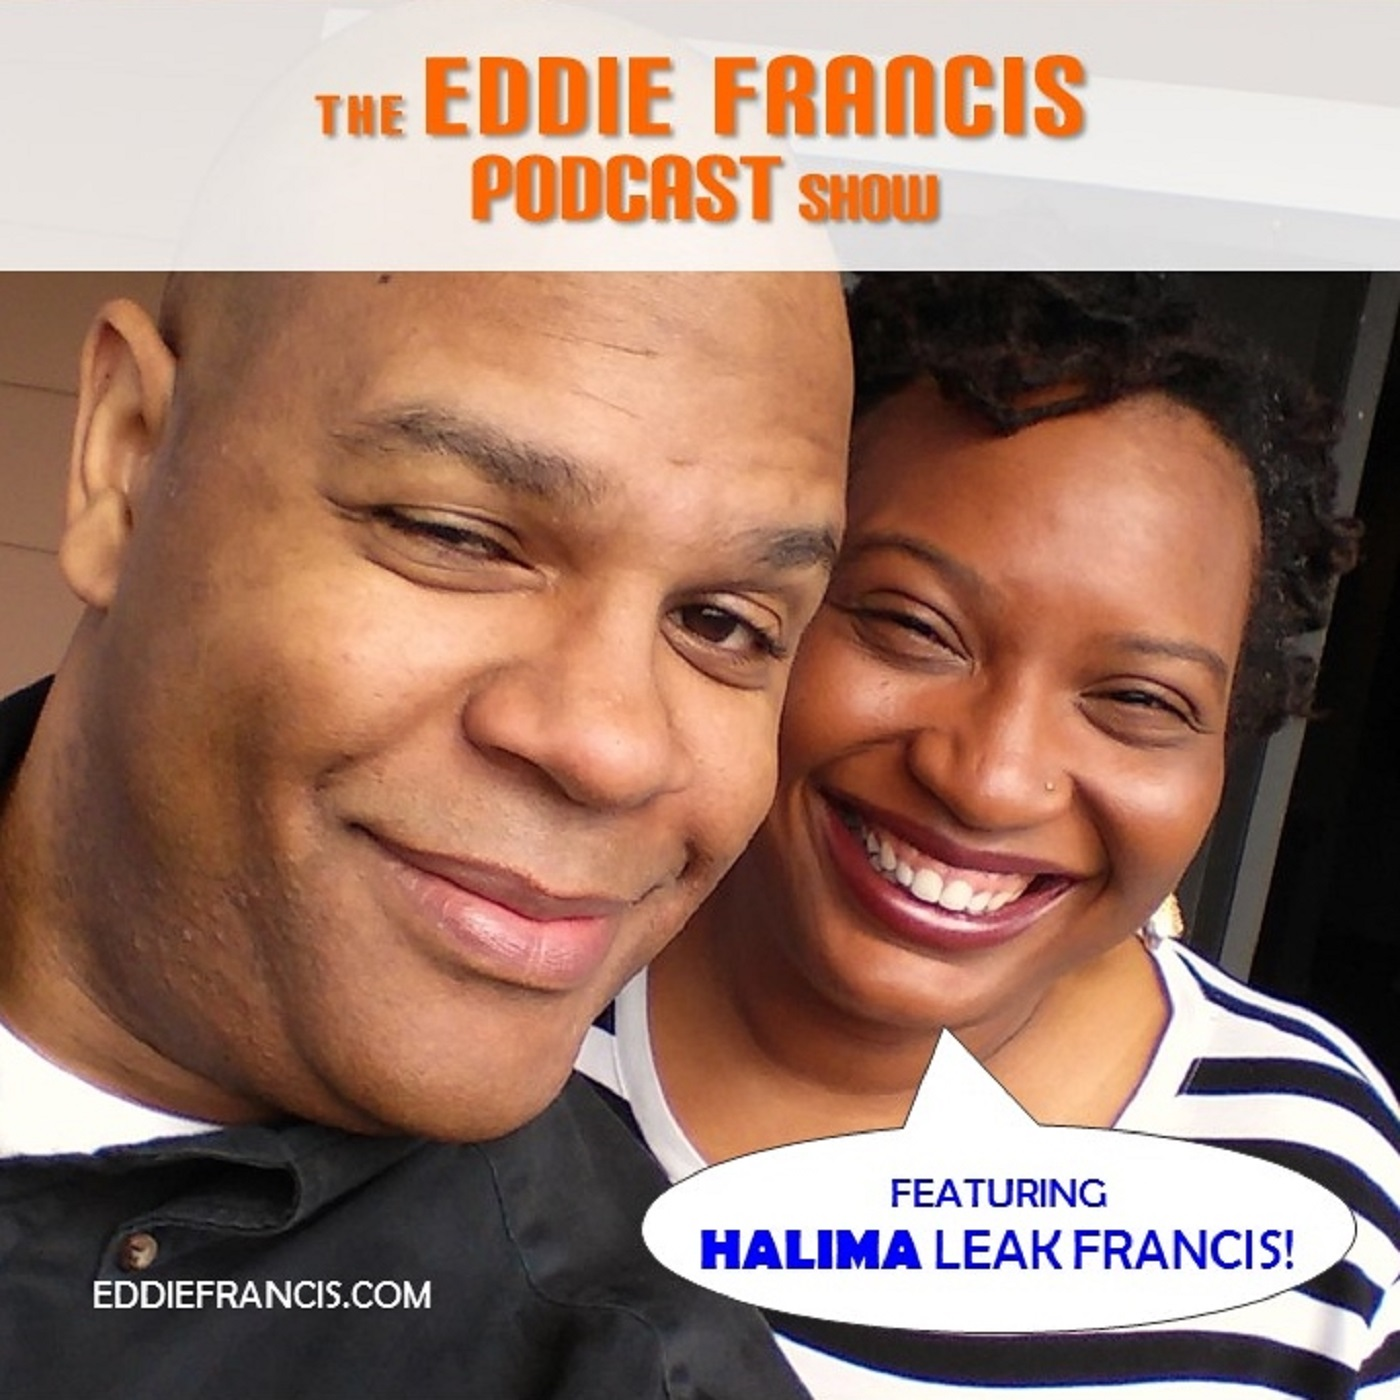 The Eddie Francis Podcast Show featuring Halima Leak Francis